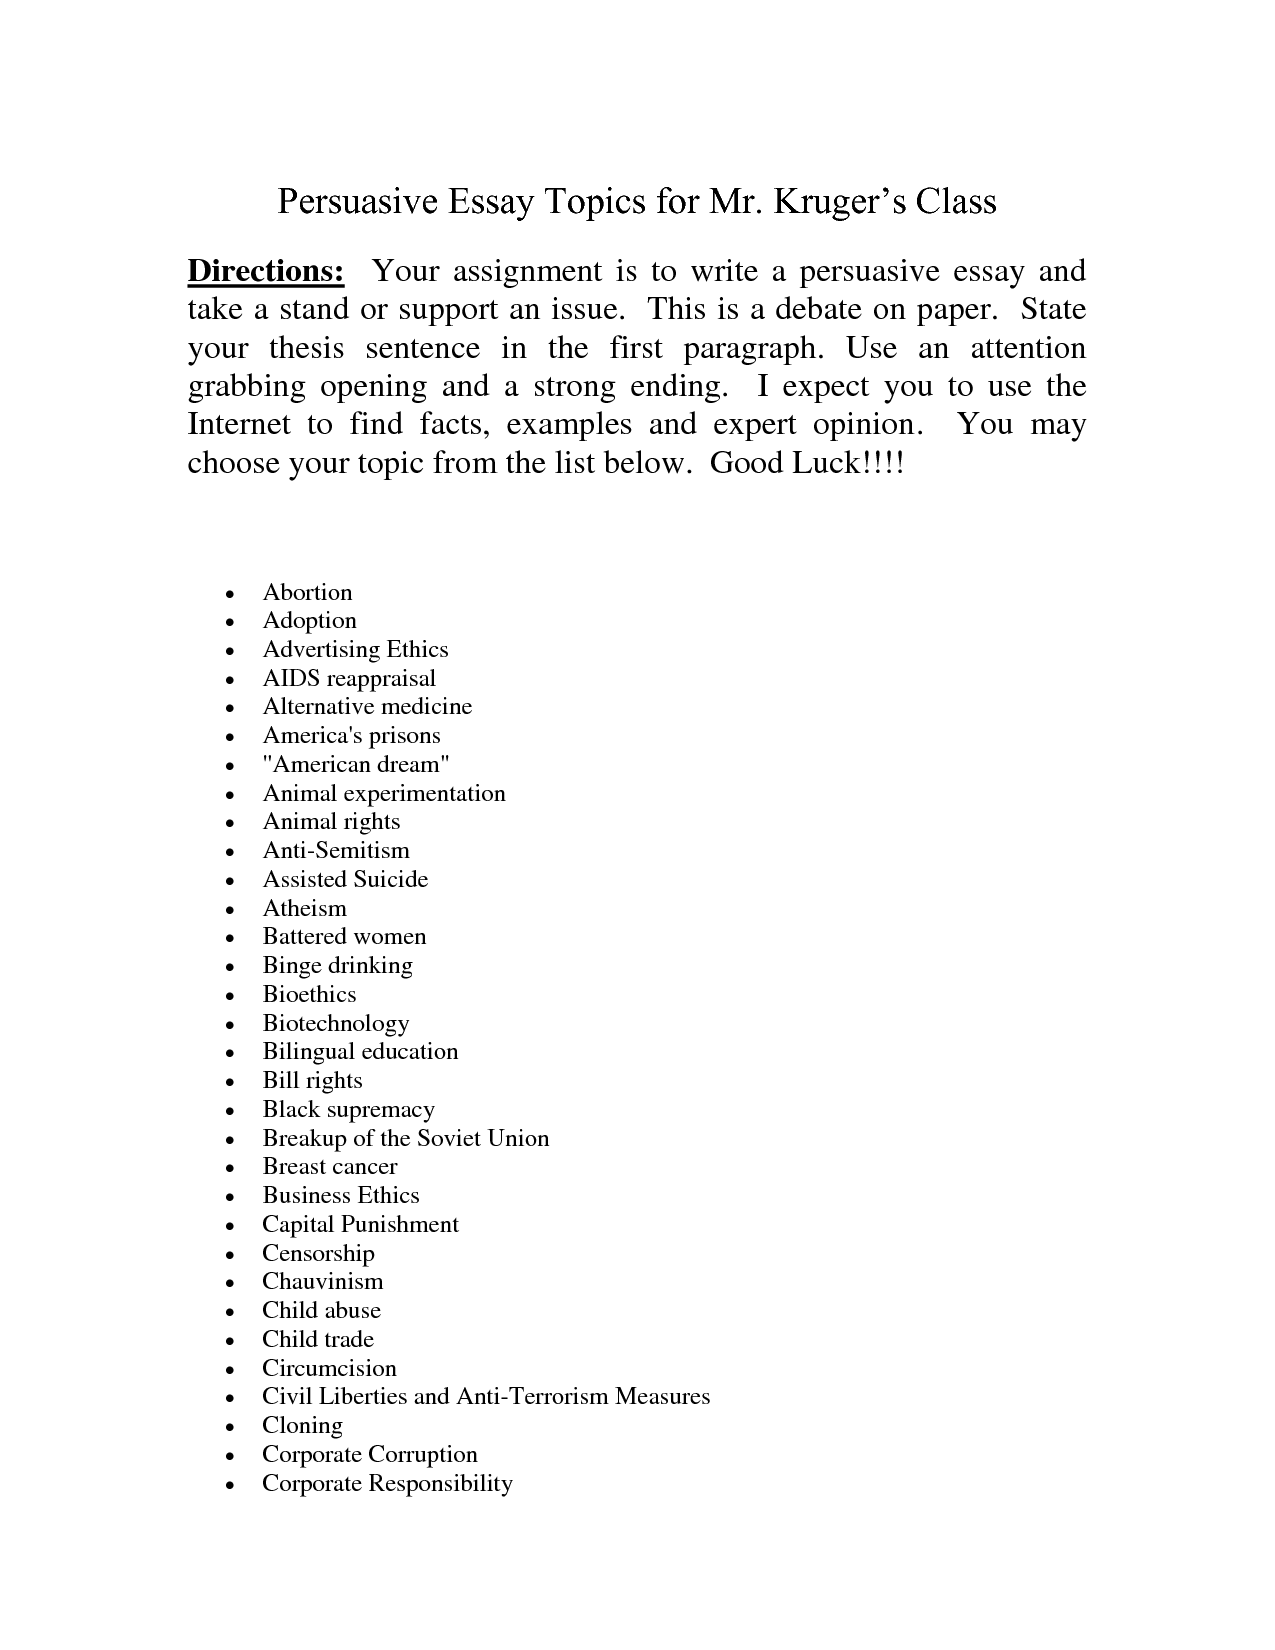 002 Essay Example Persuasive Topic Ideas Topics Outline Easy For High School Students College Essays Applicati 7th Graders Primary Middle Elementary Stunning 4th Grade Uk Full